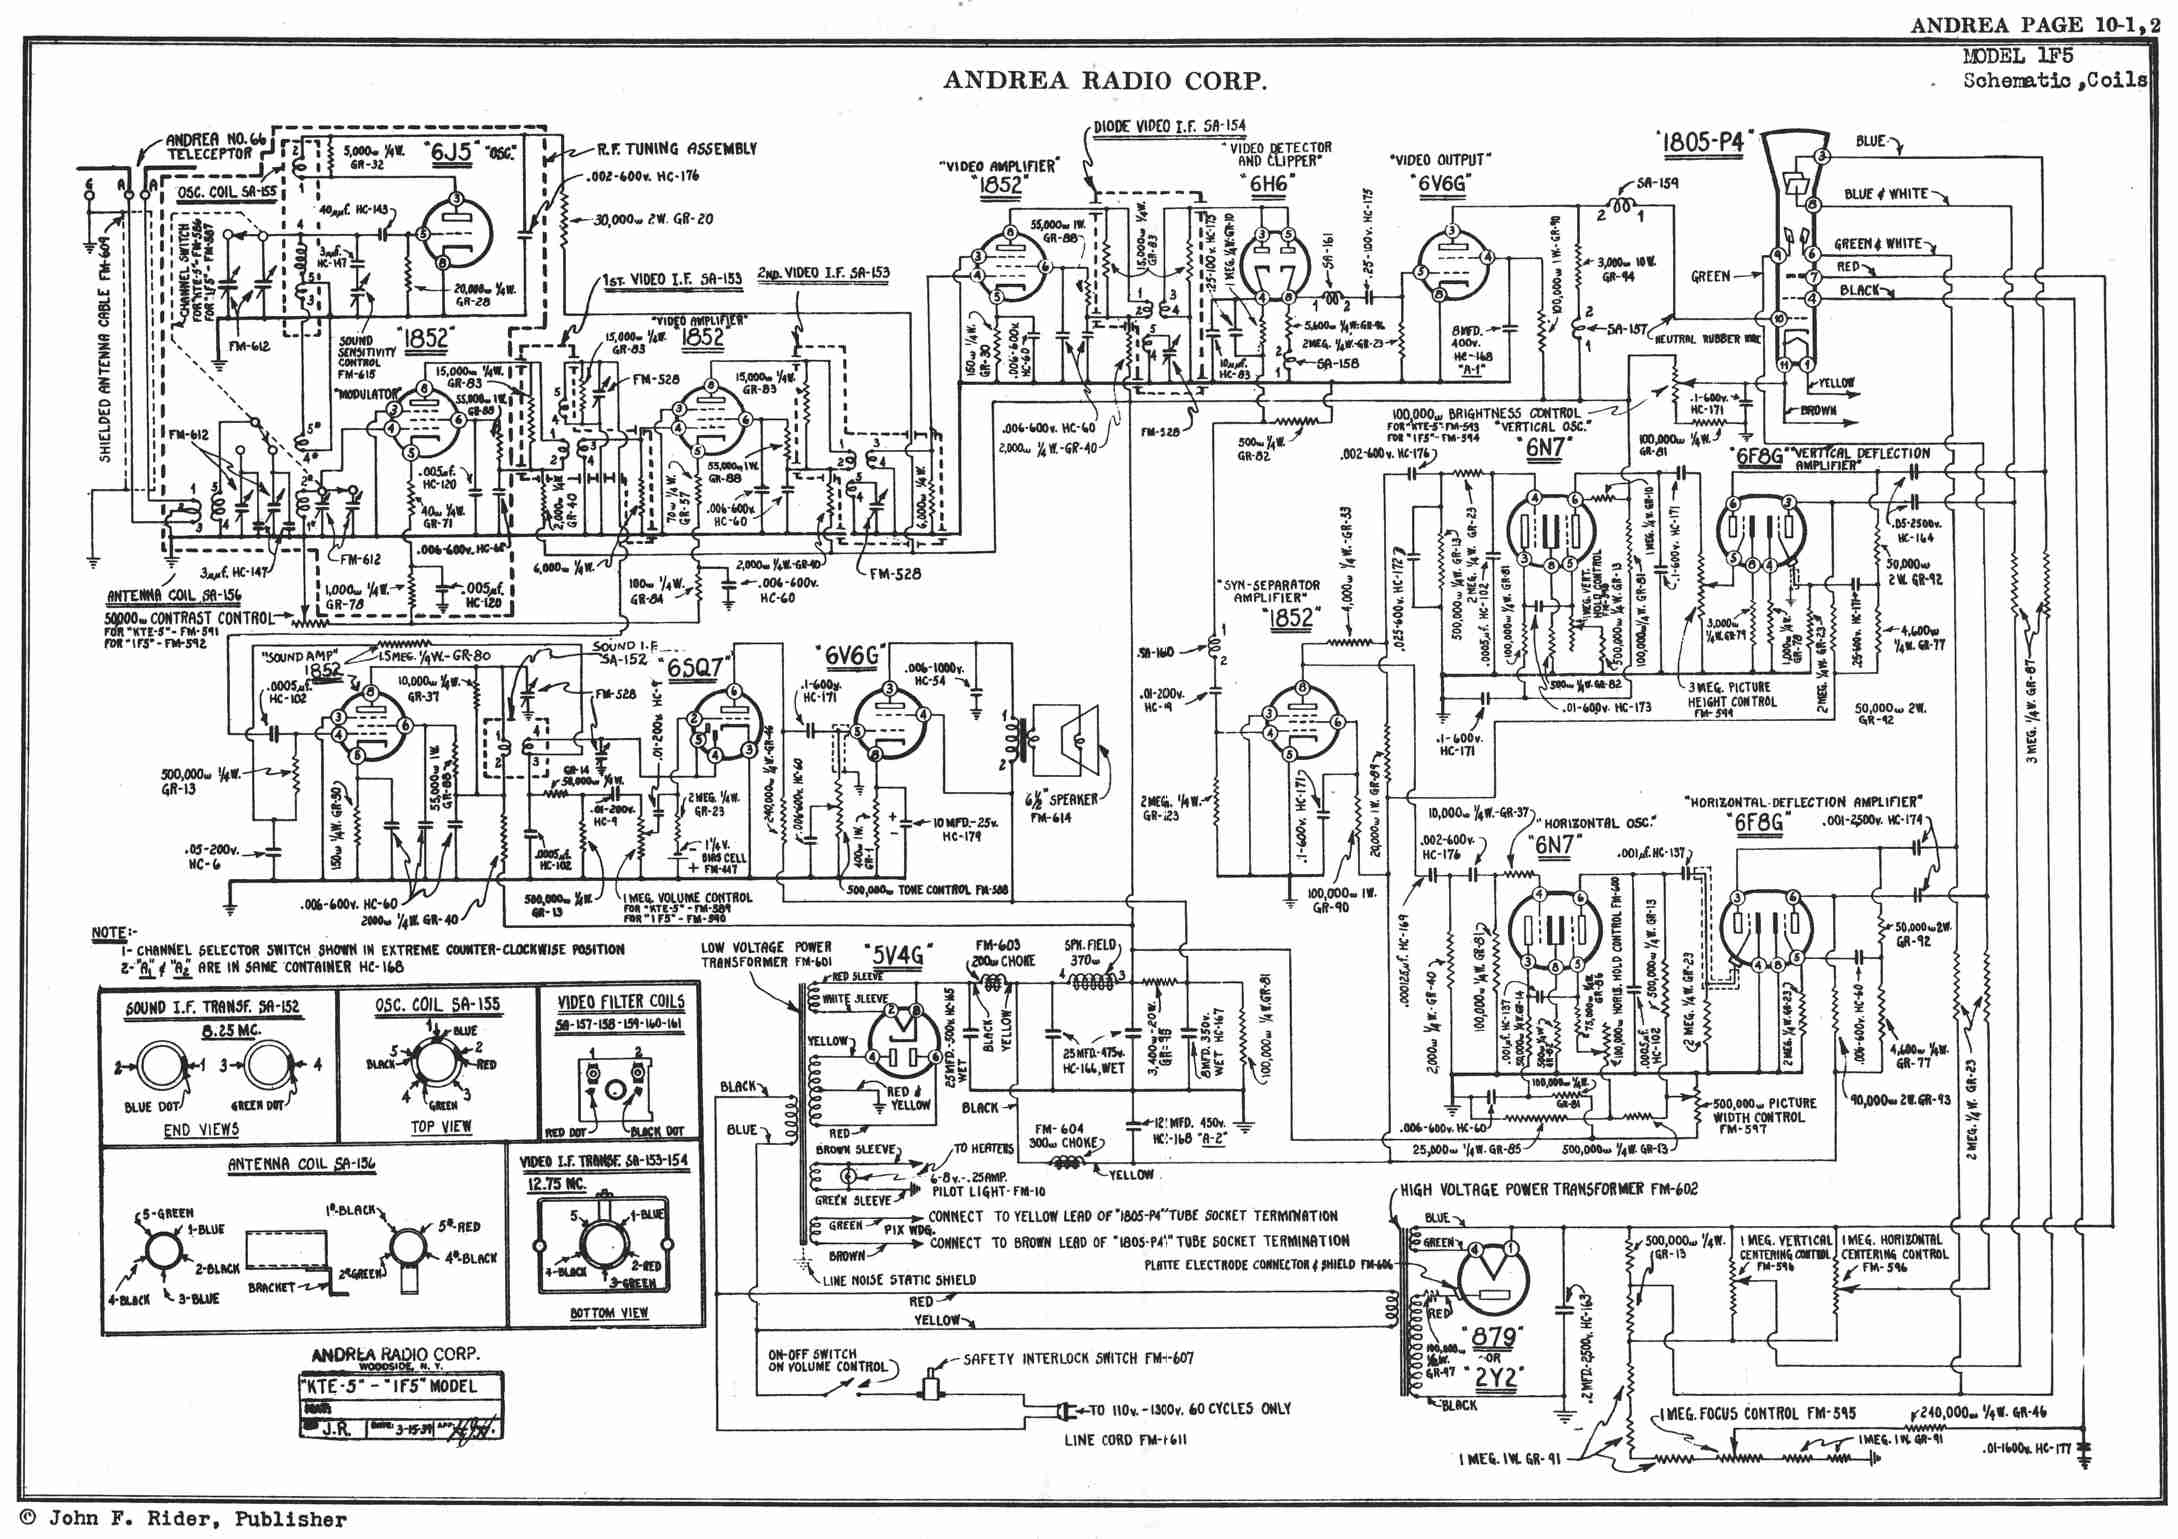 tv tuner card circuit diagram typical refinery process documentation andrea 1f5 television receiver 1939